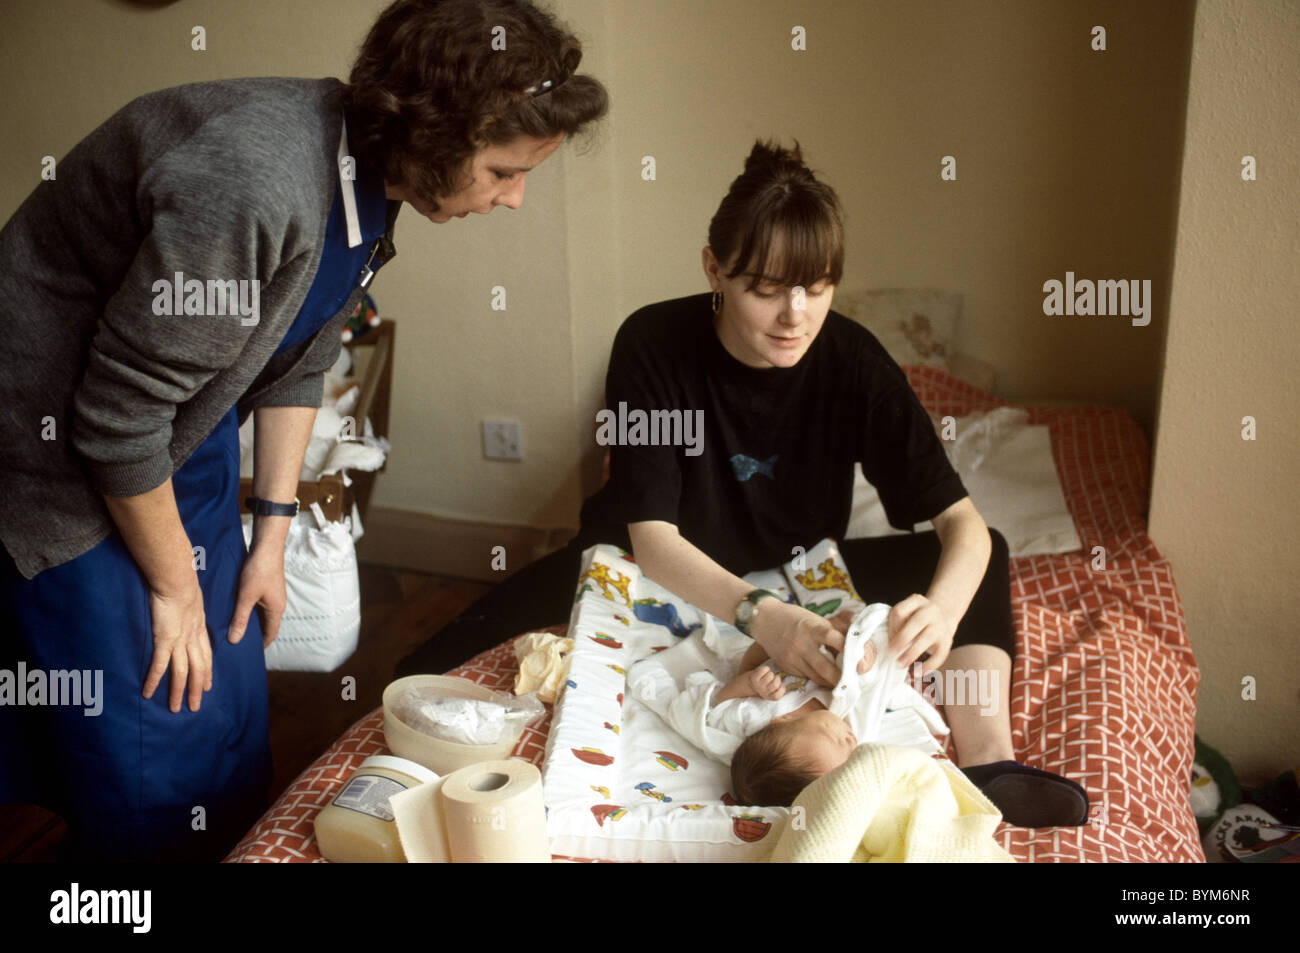 Midwife at a home visit with mother and newborn - Stock Image